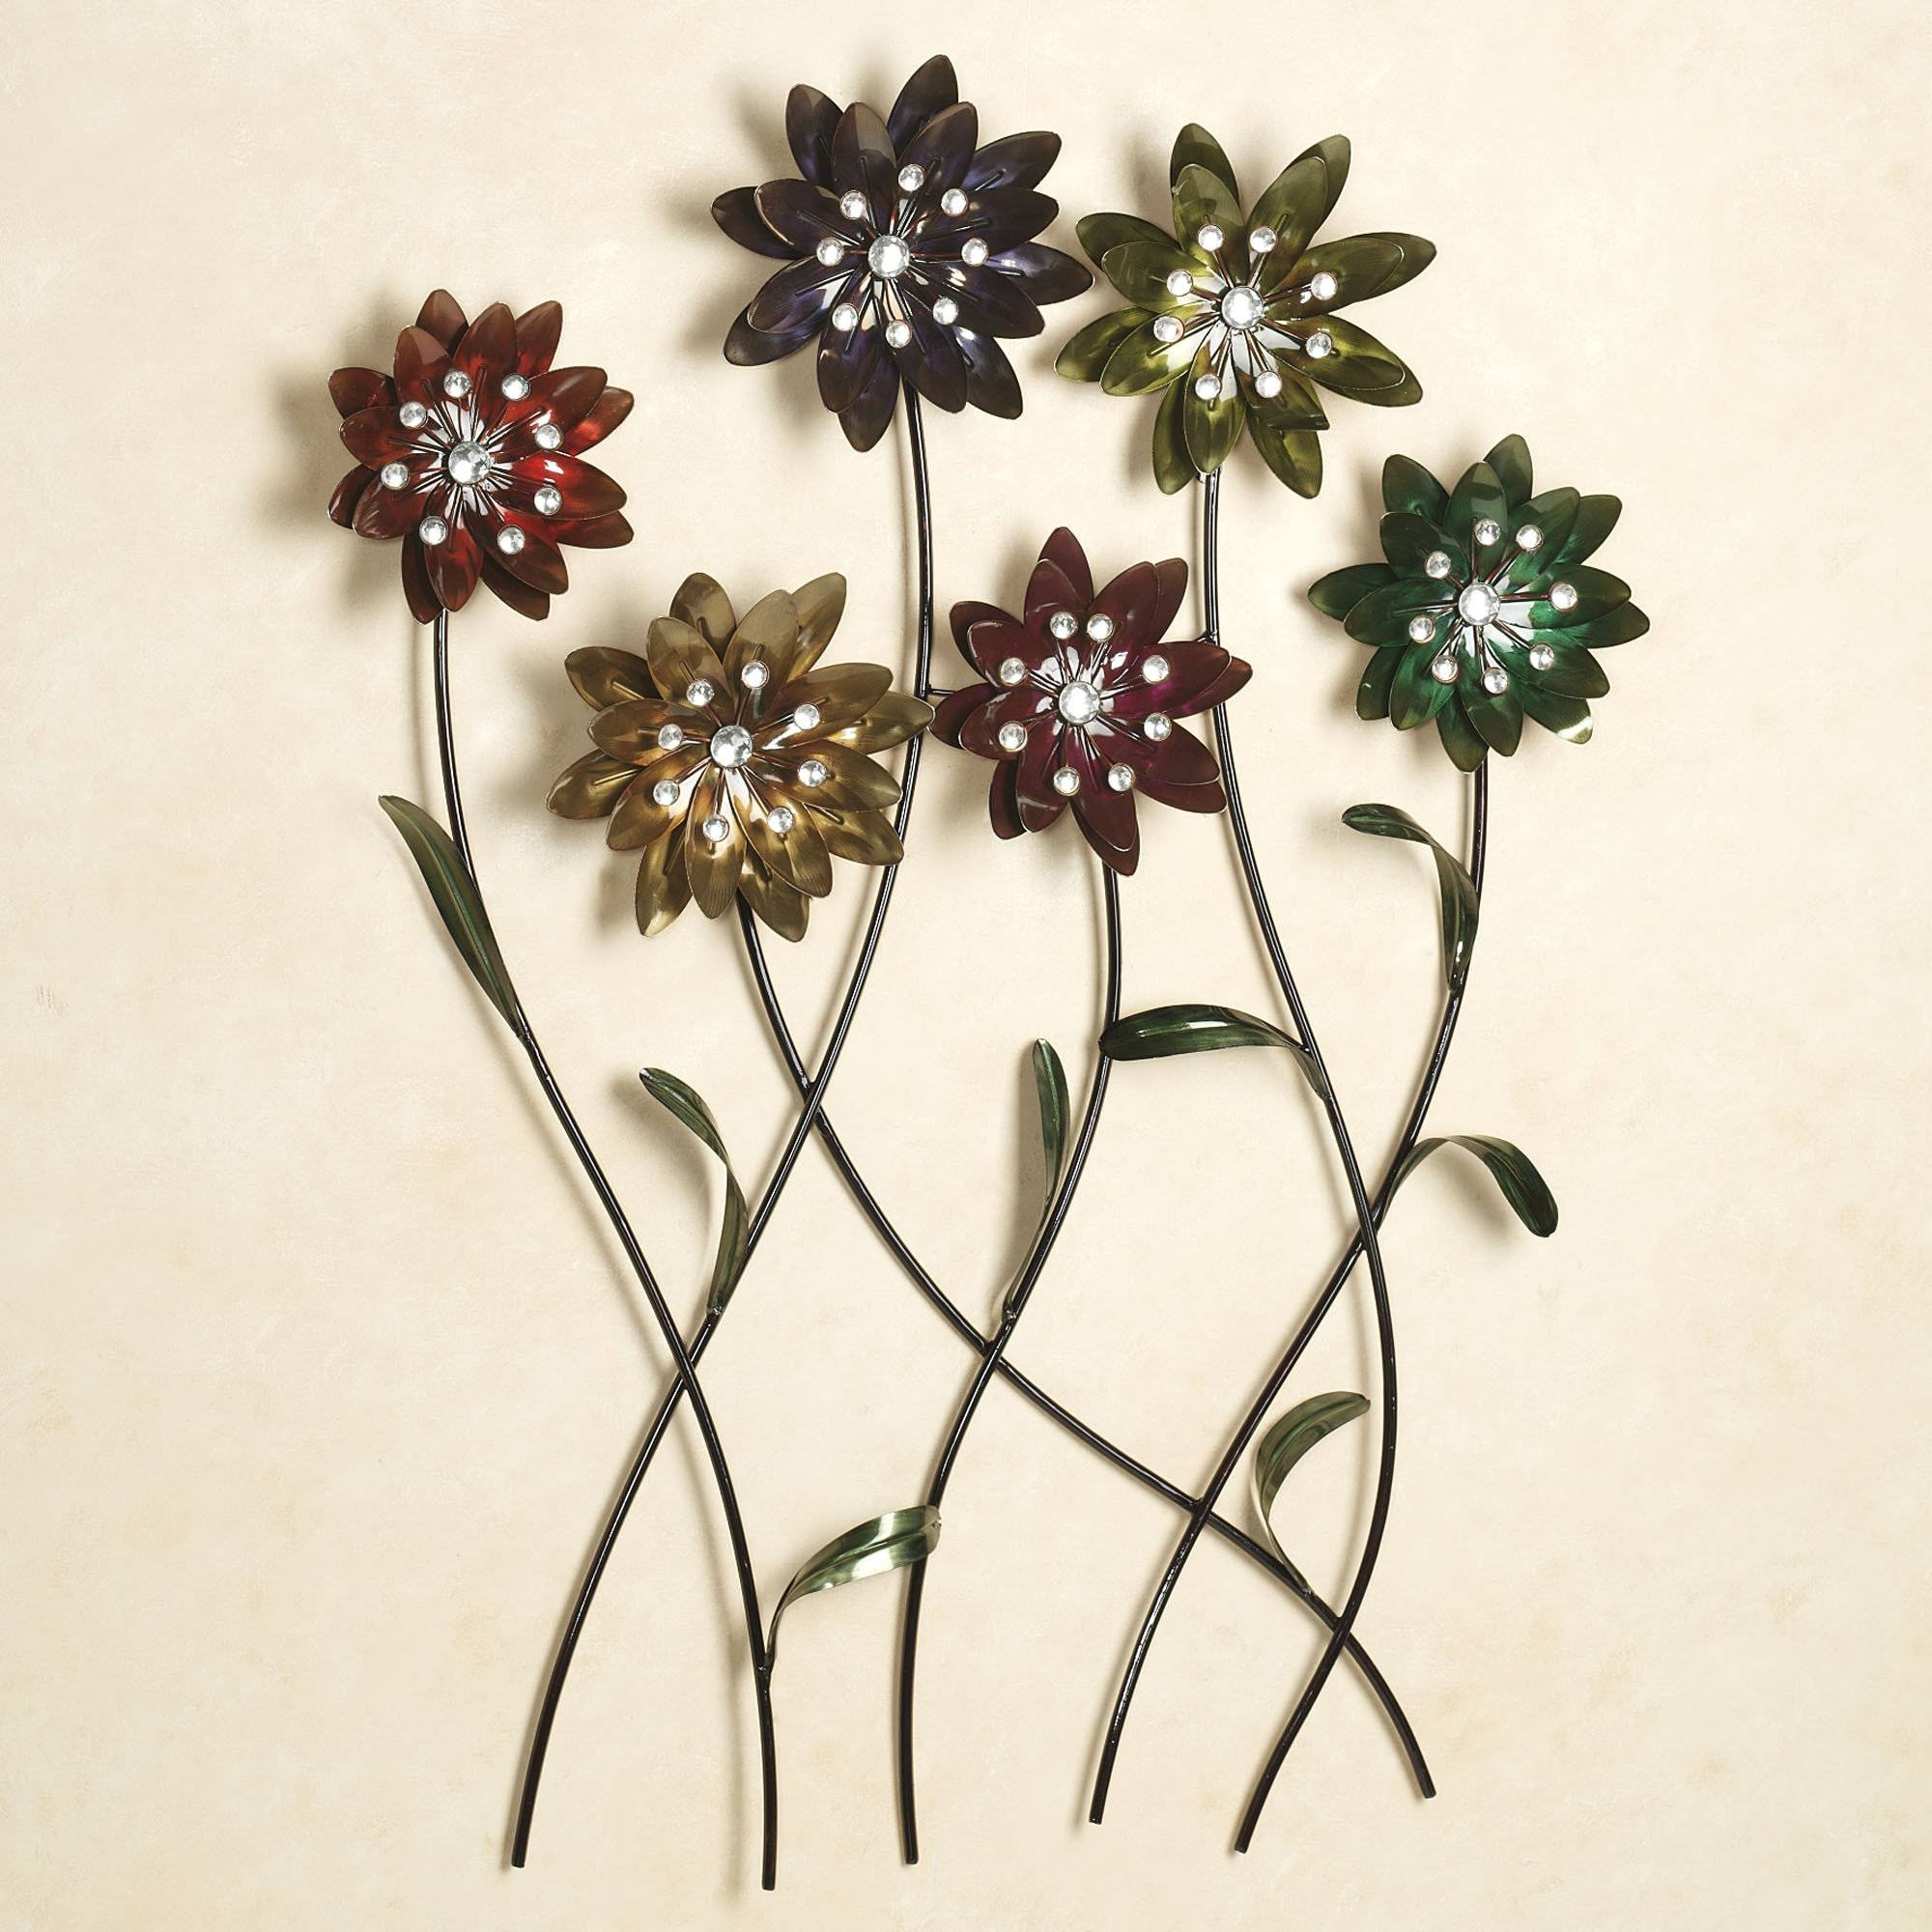 Wall Art Design Ideas: Touchofclass Metal Wall Flower Art Sample Intended For Best And Newest Flower Metal Wall Art Decor (View 3 of 20)